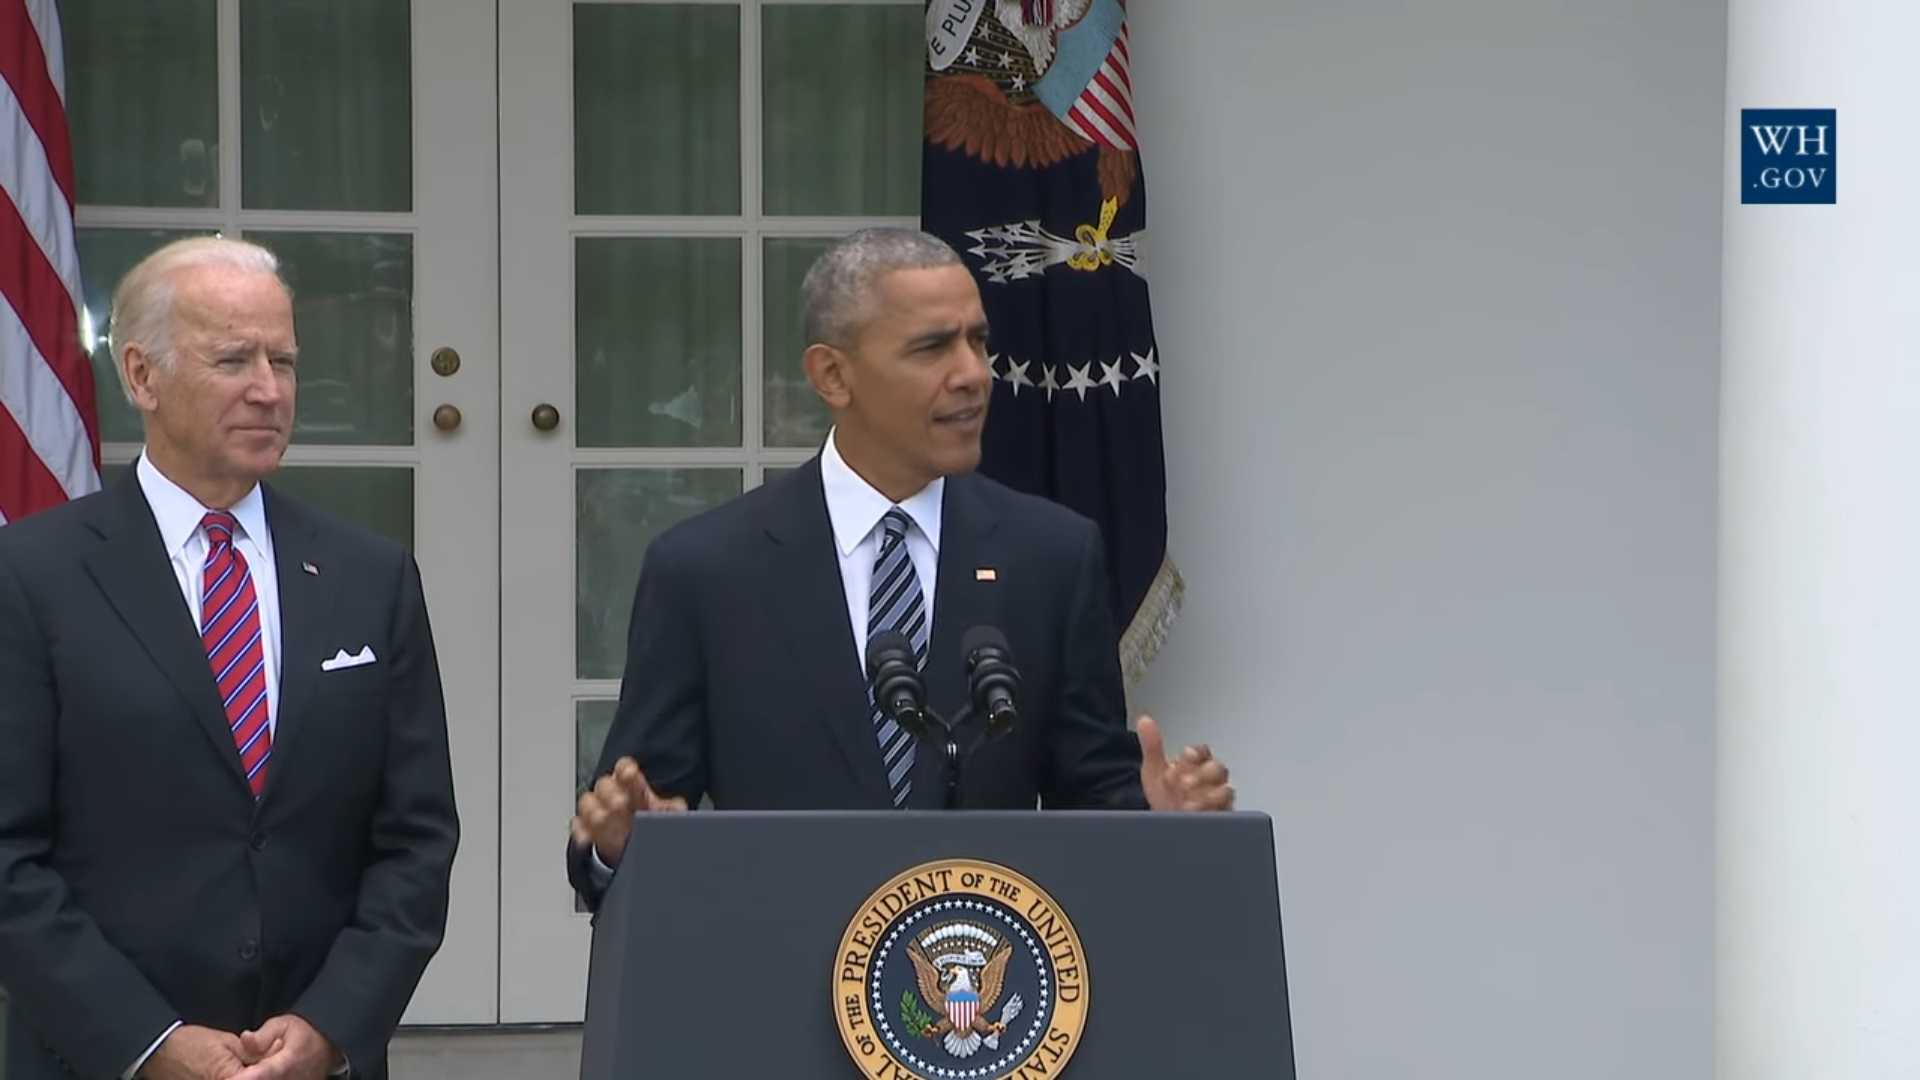 President Obama: We all want what's best for this country